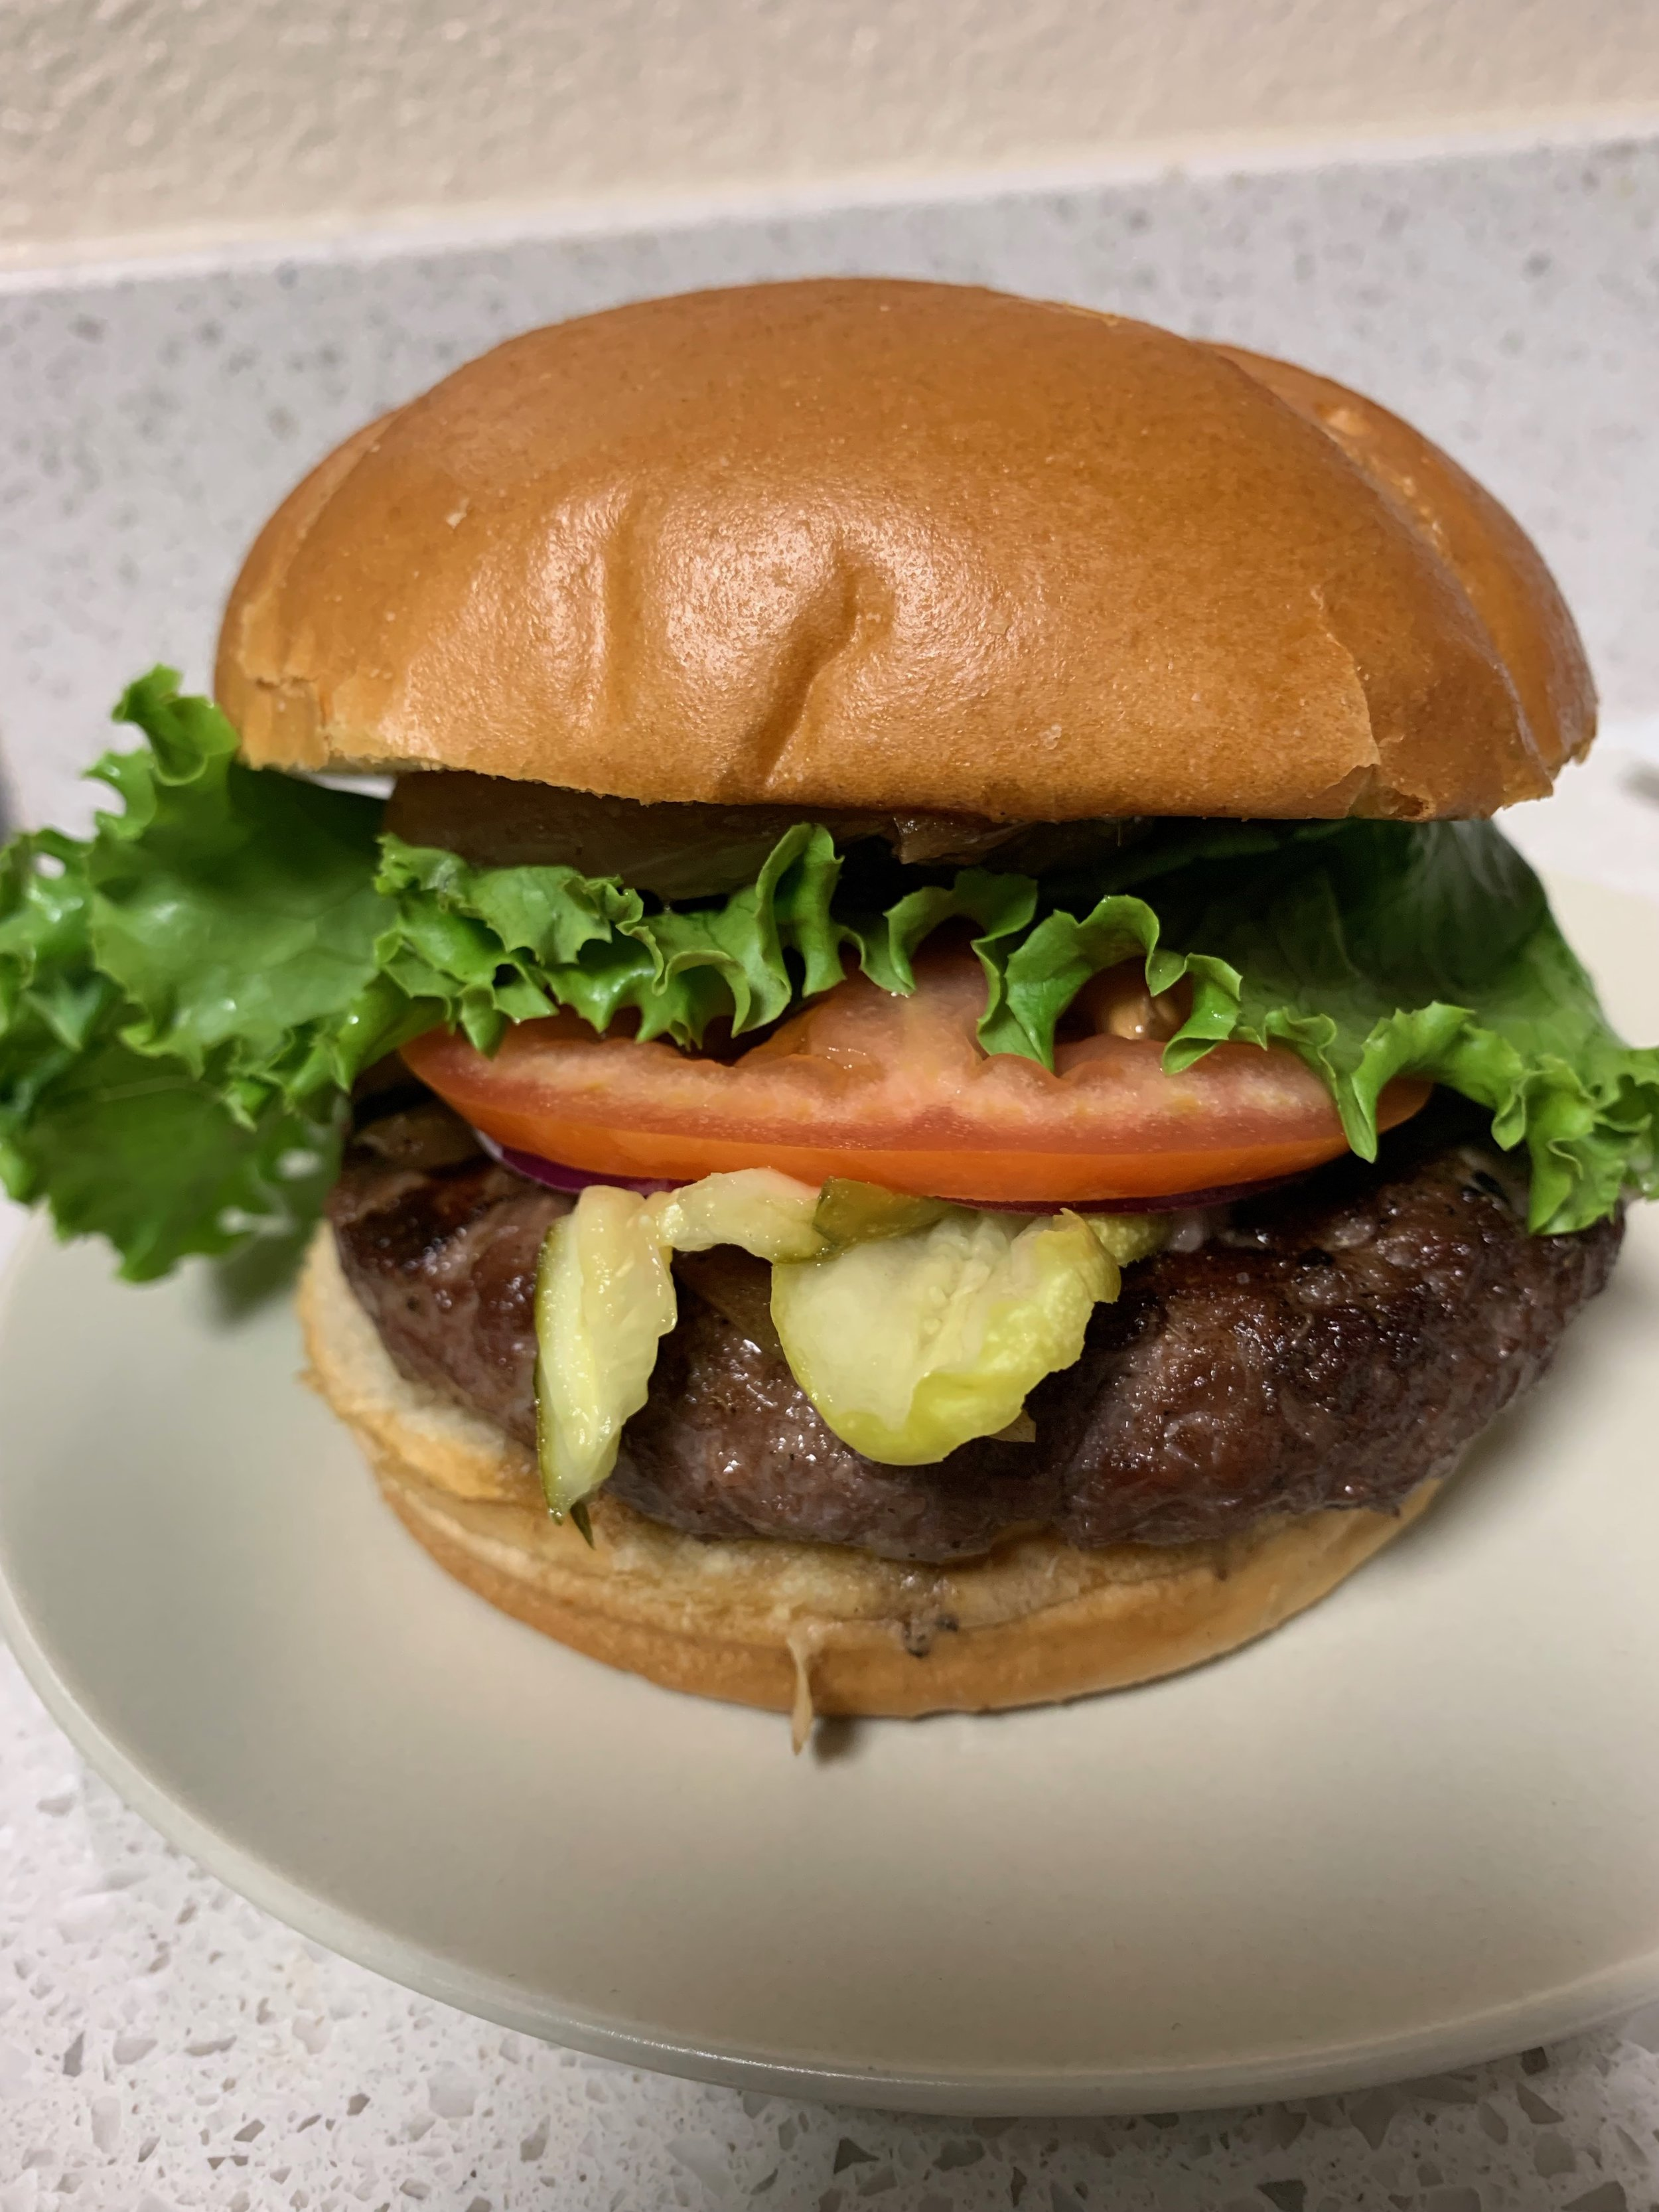 Papa Mak's Stuffed Blue Cheese burger